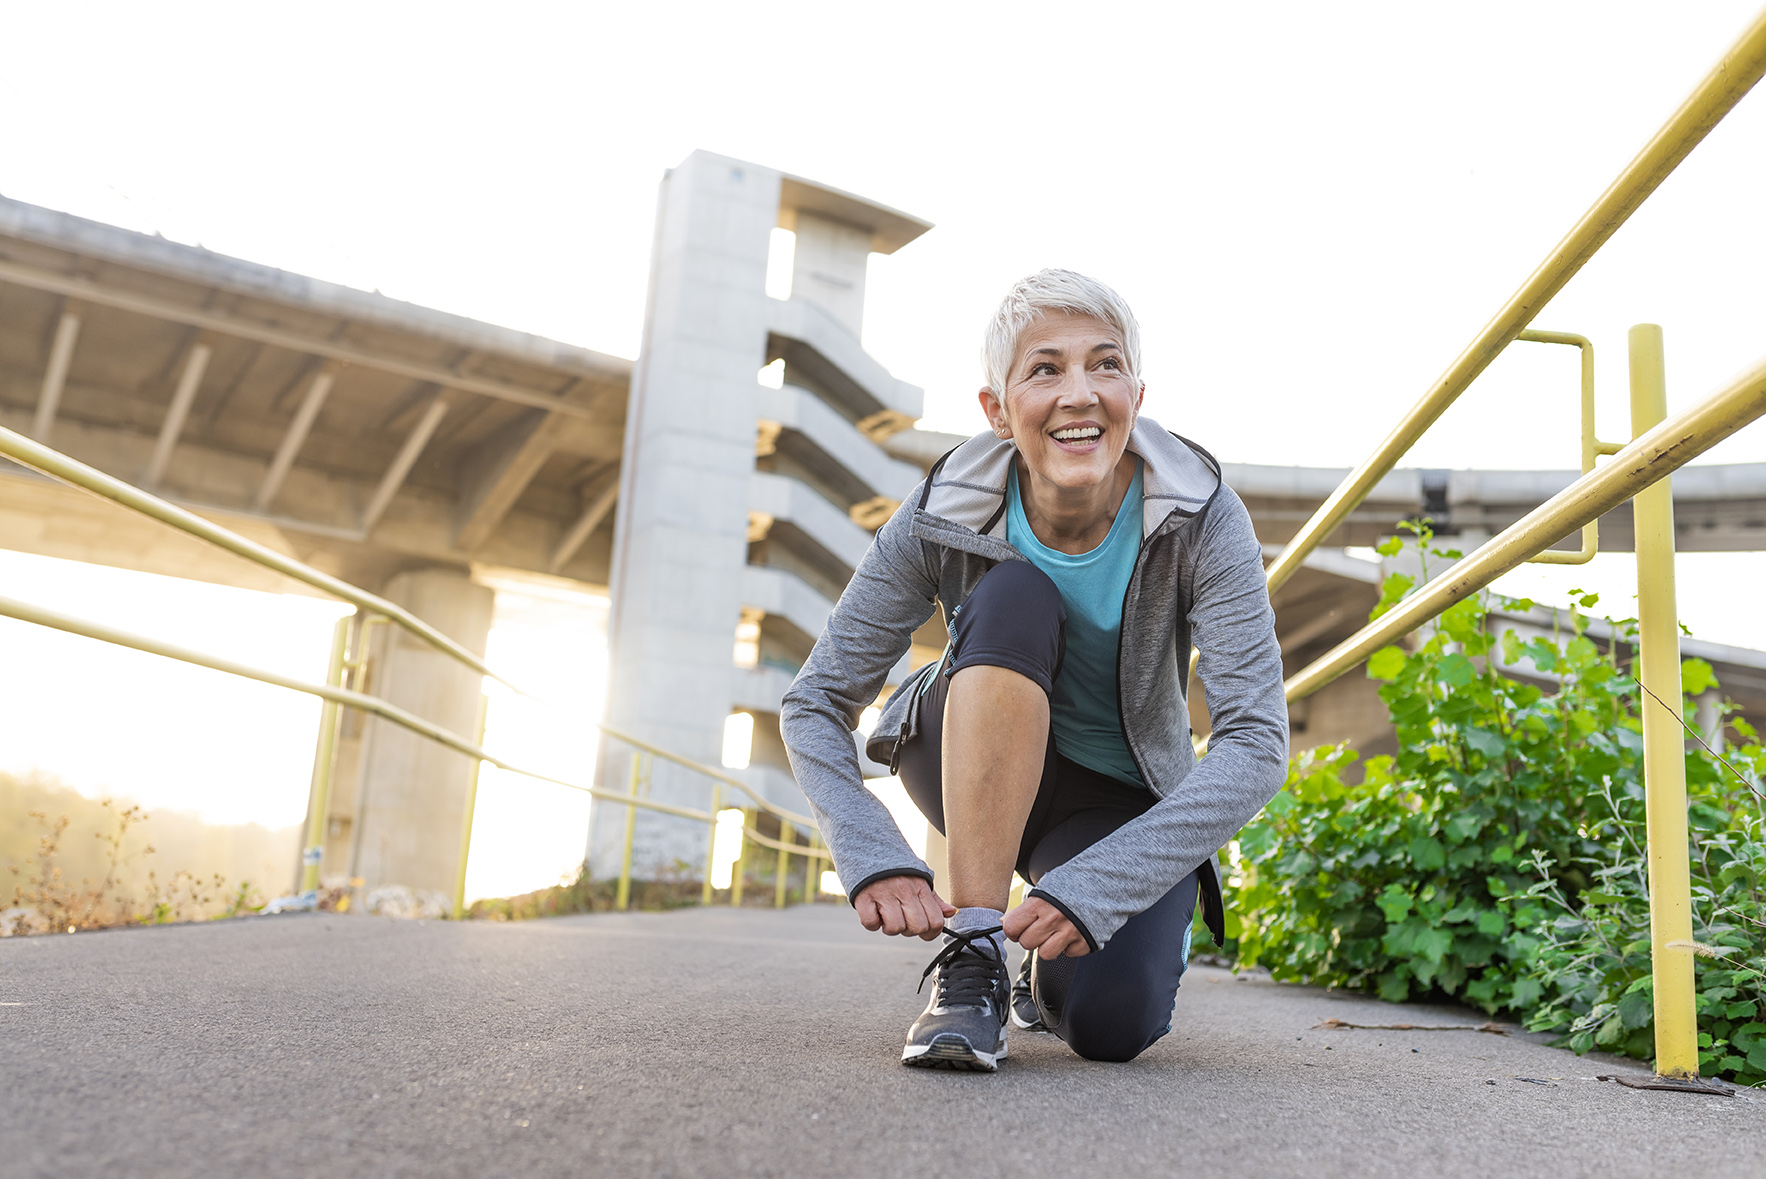 Healthy lifestyle and sport concepts, Photo of Fitness sport mature gray hair woman runner jogging, smiling female runner jogging exercise benefit workout in a Park, tying laces of running shoes before training. Woman tying laces on her sneakers at sunset. Runner having rest while looking away. Sport concept.